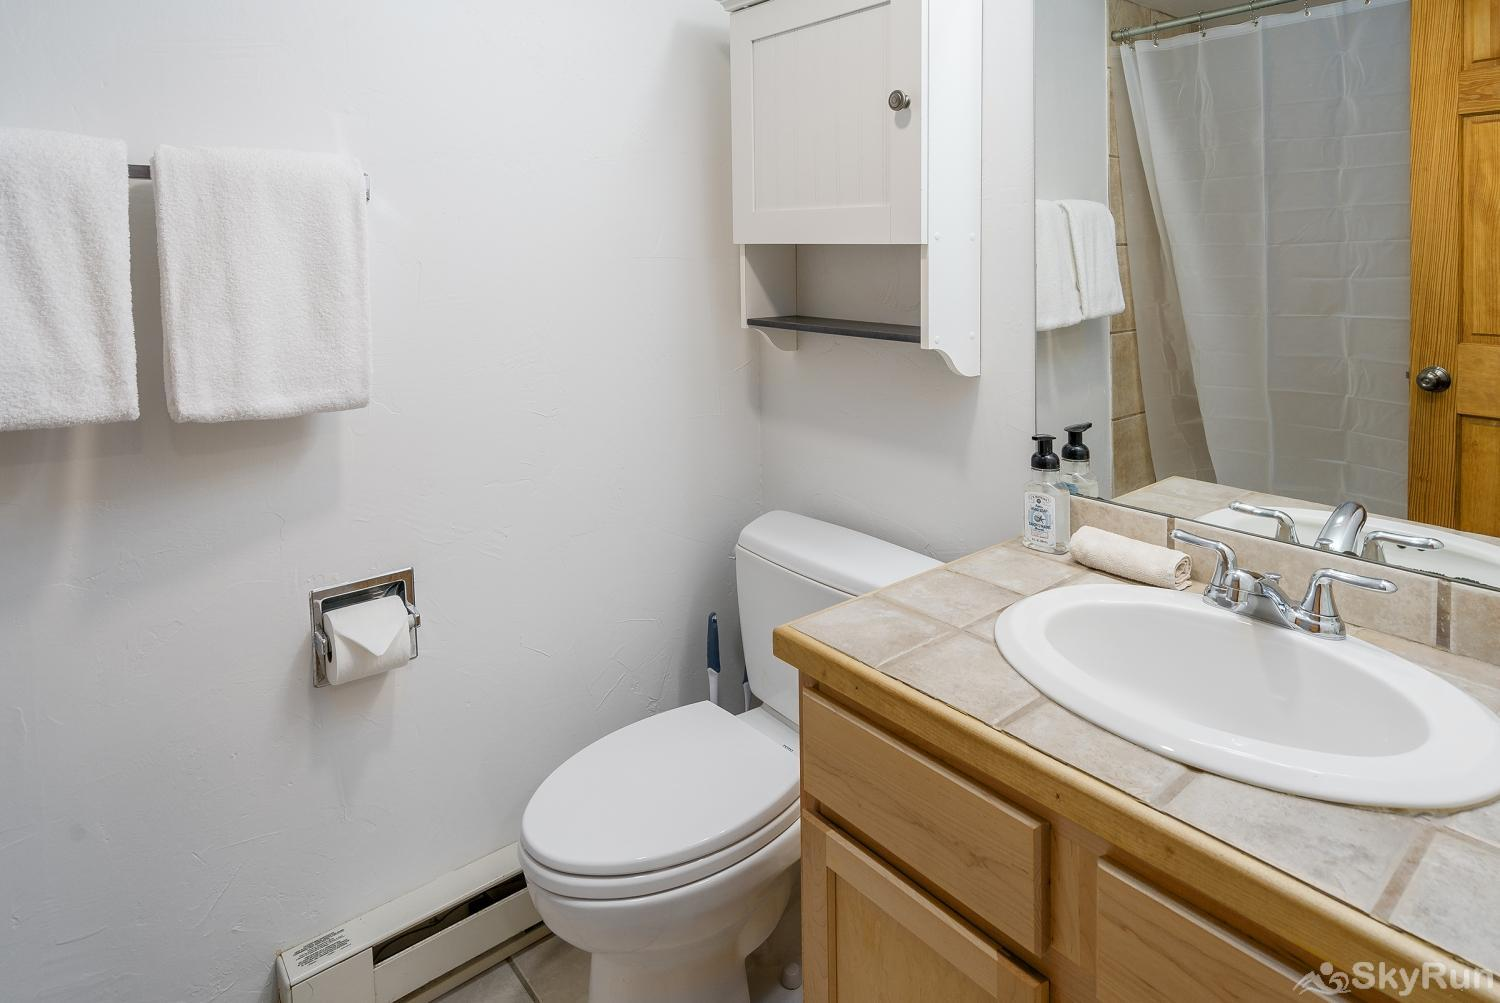 Shadow Run C205 Full bath located in the hall across from the Queen bedroom.